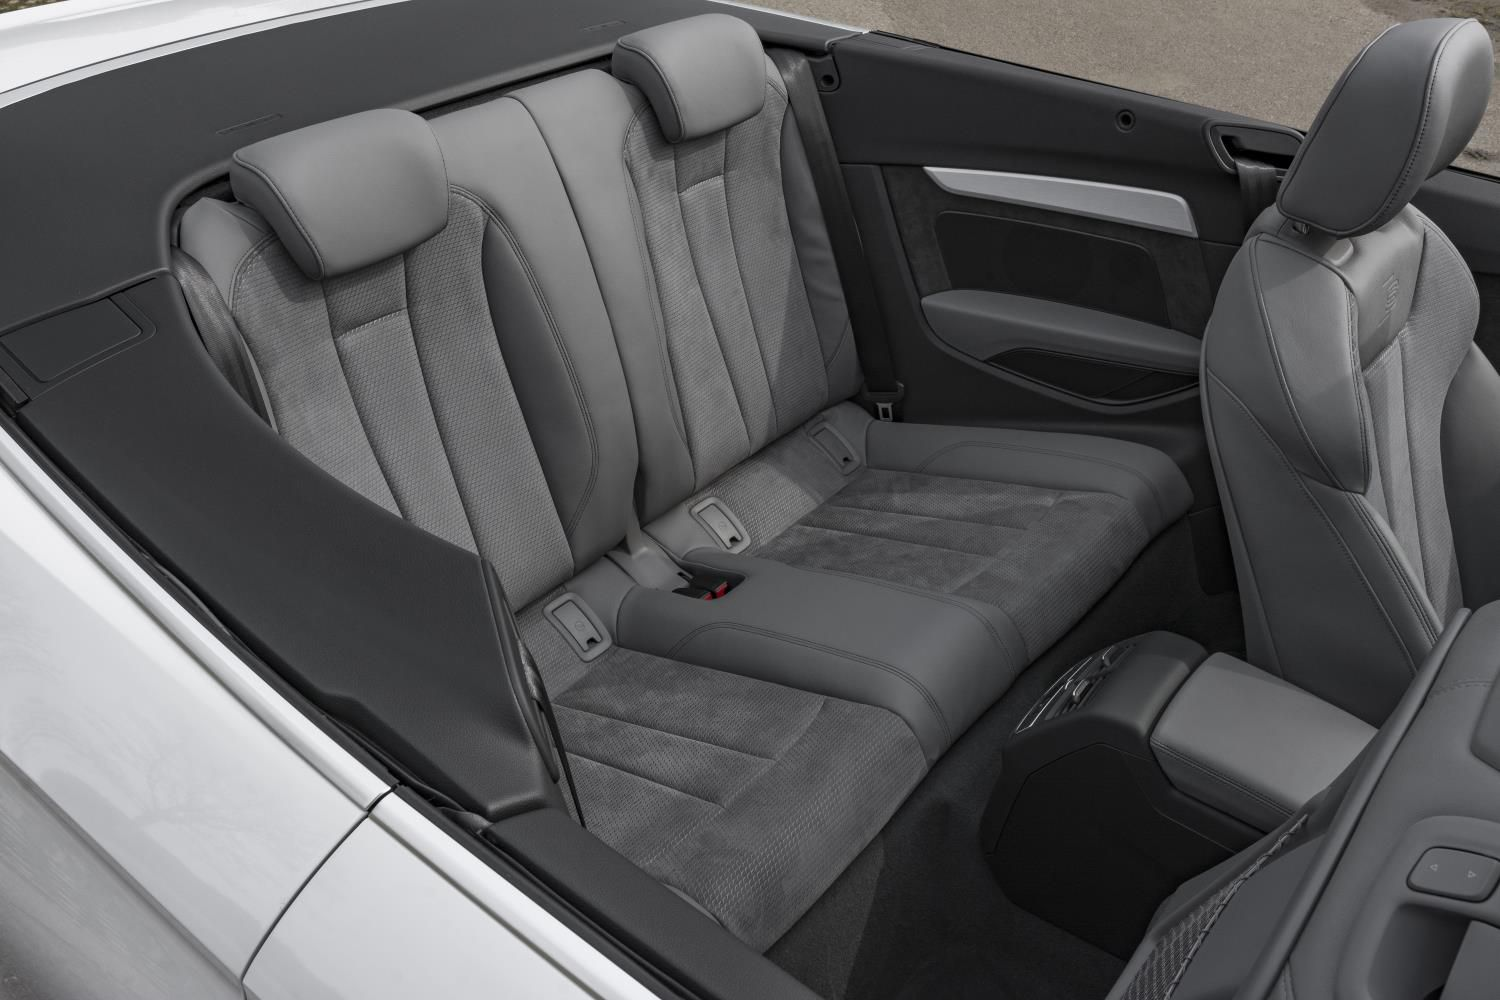 Grey leather rear seats in a white Audi A5 Cabriolet with the roof down